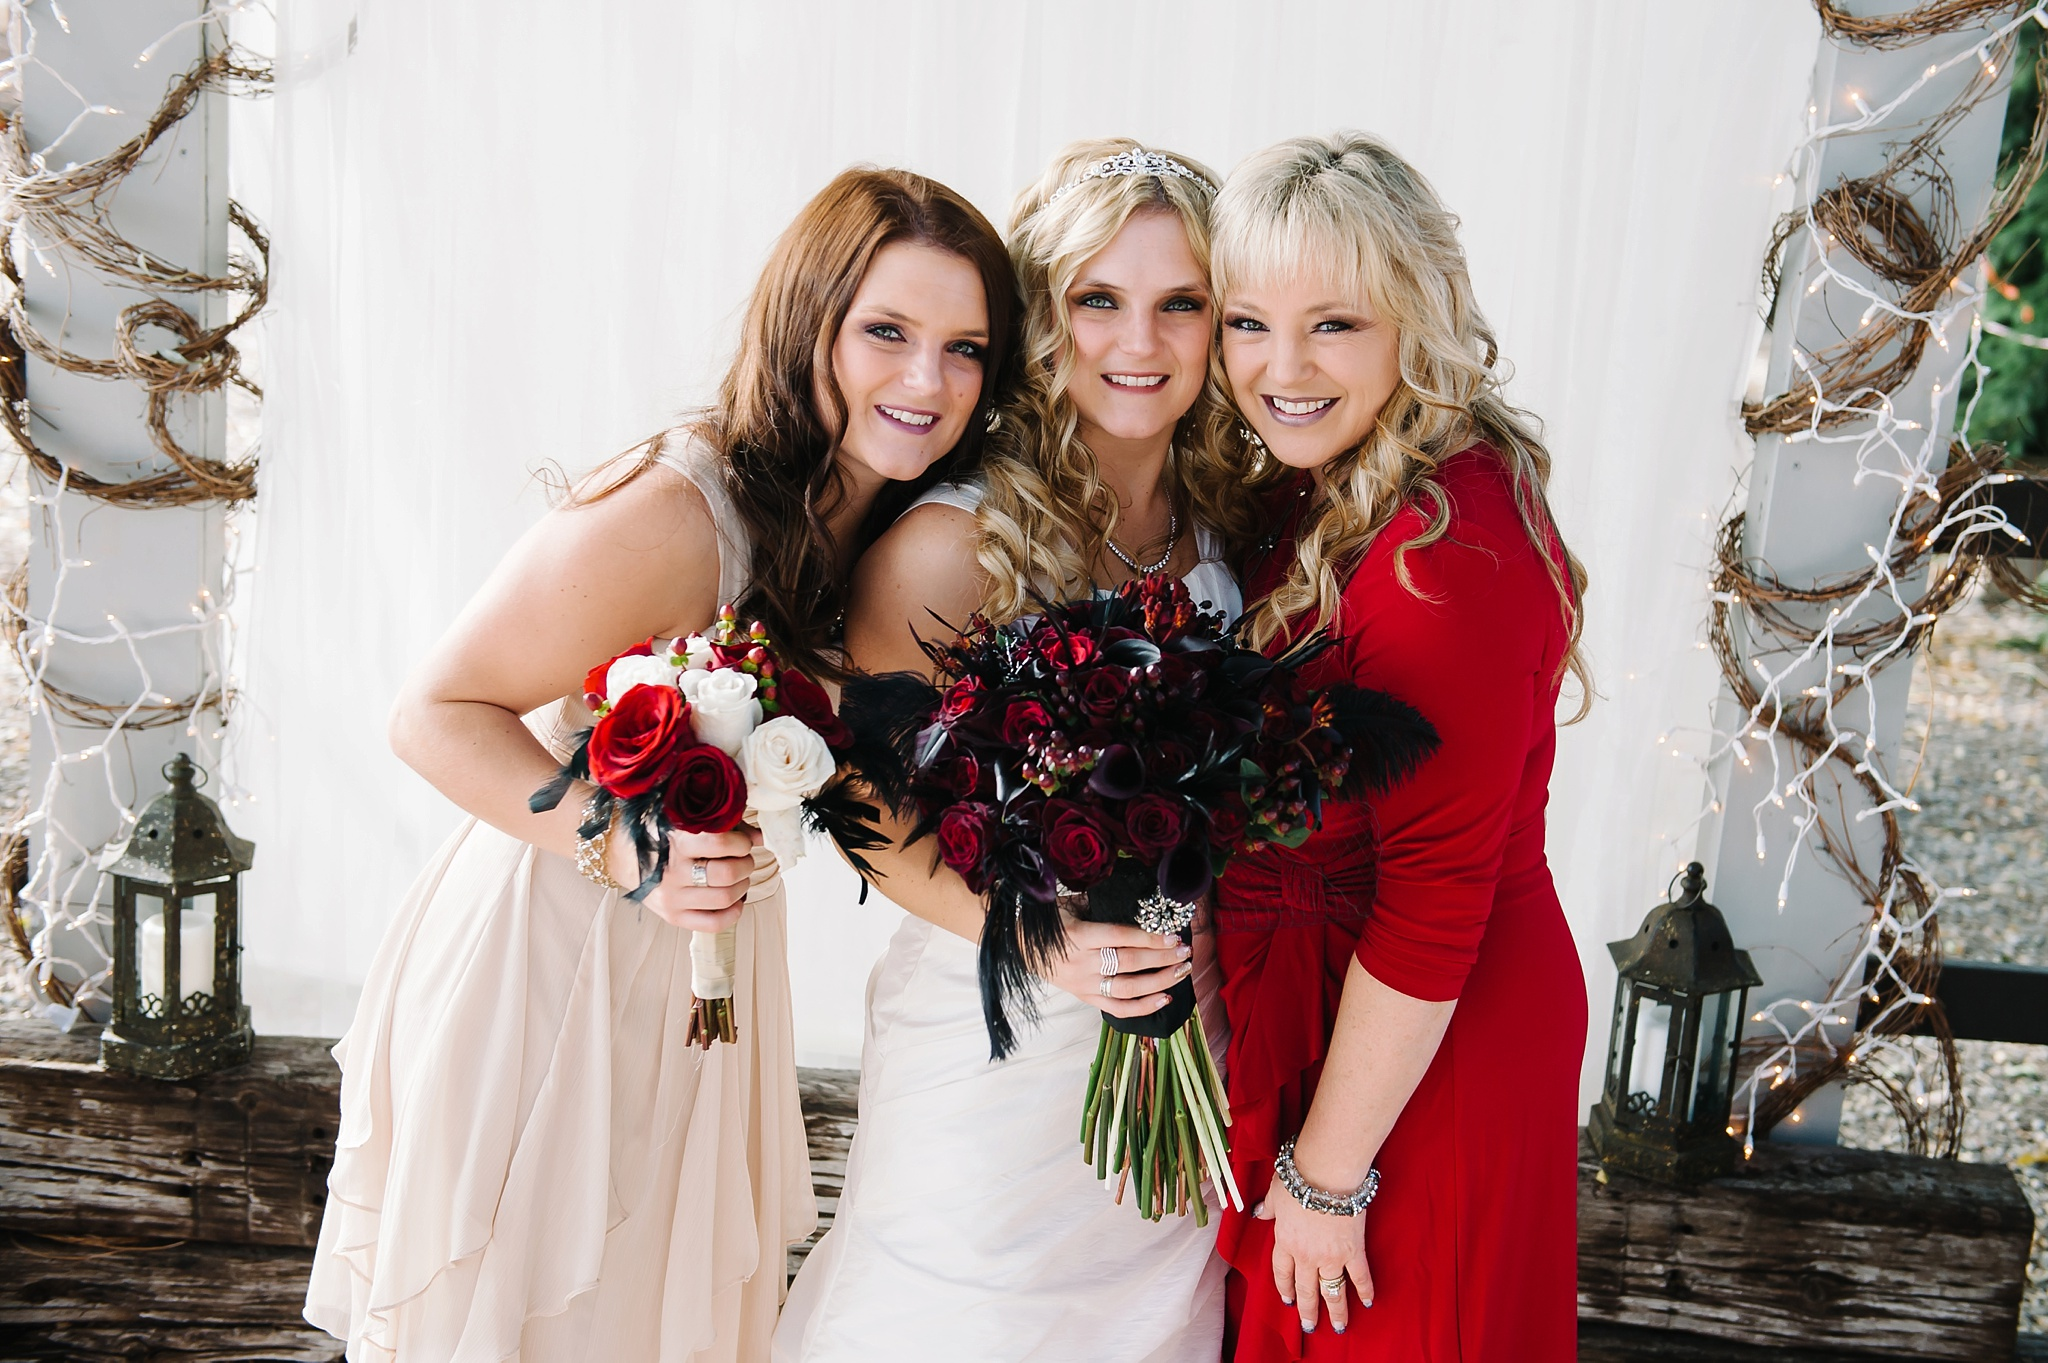 SLC Utah Wedding Photographer Ali Sumsion 049